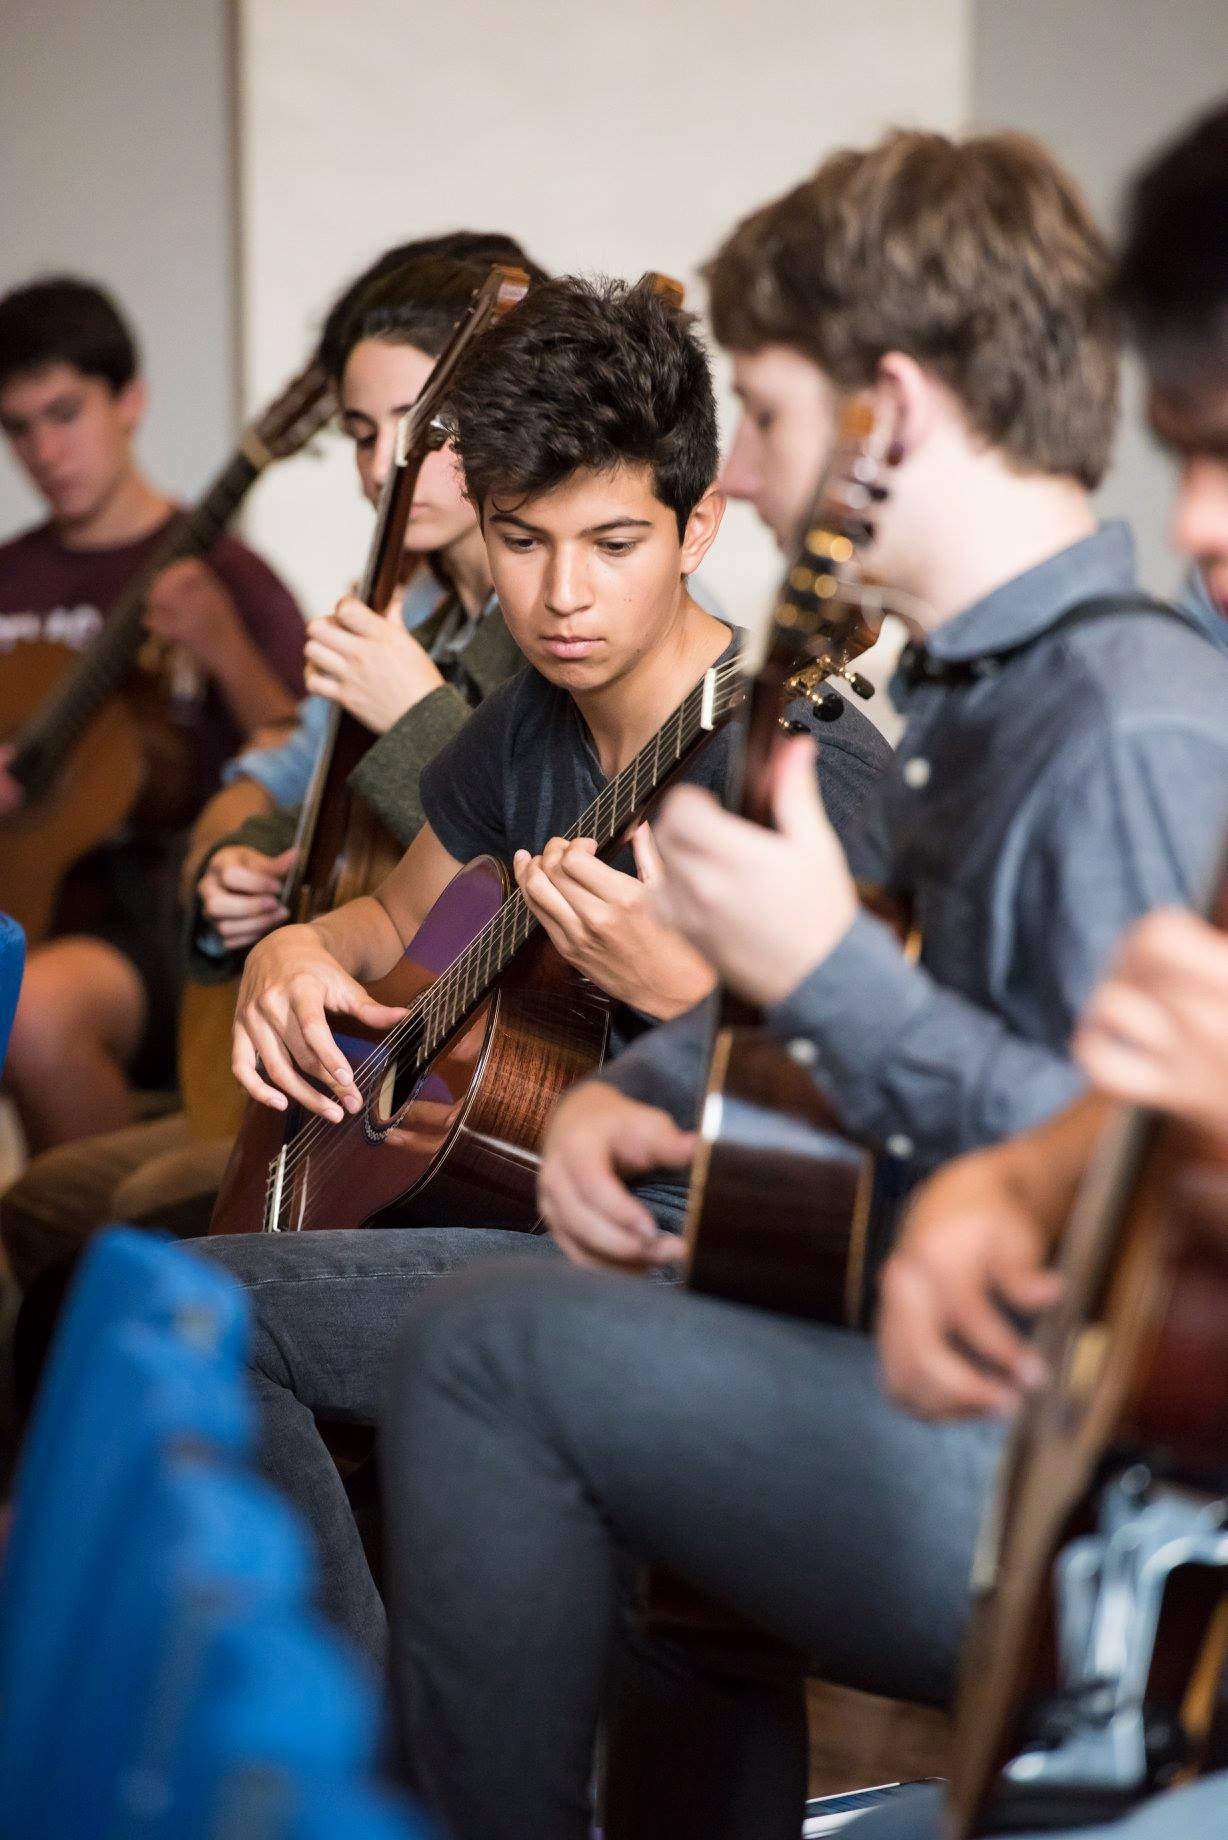 GuitarFest students playing